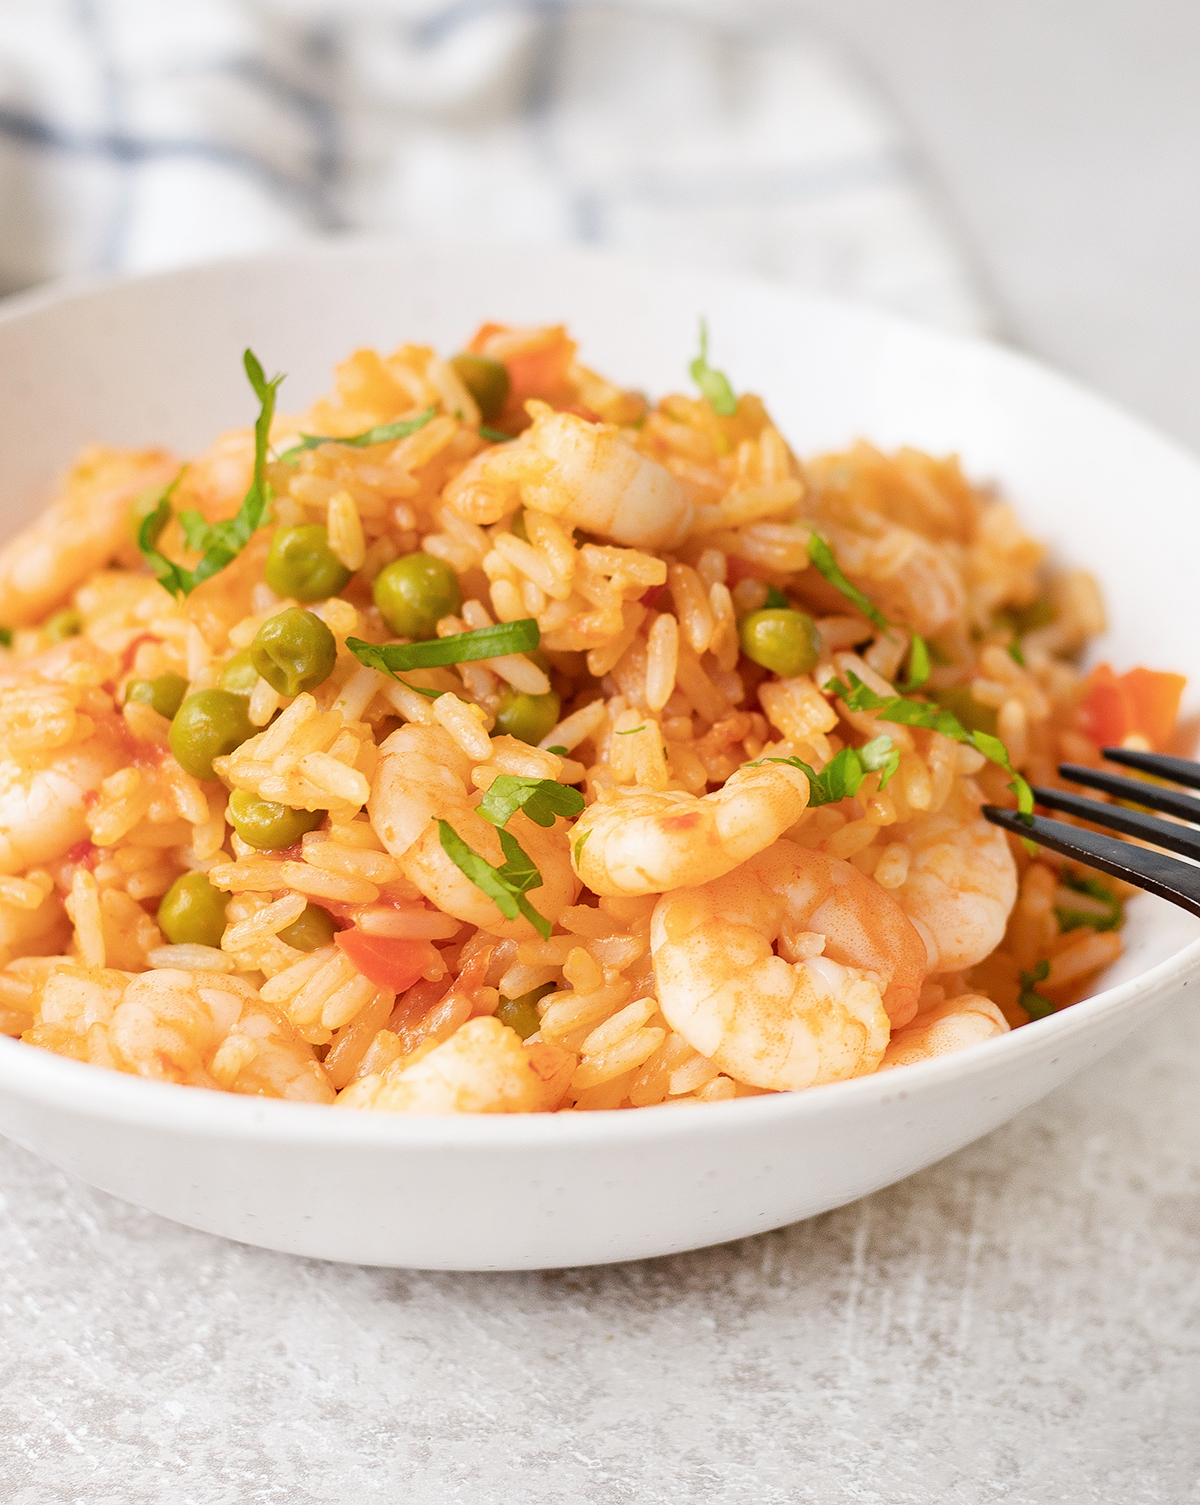 Prawns and Rice in a plate